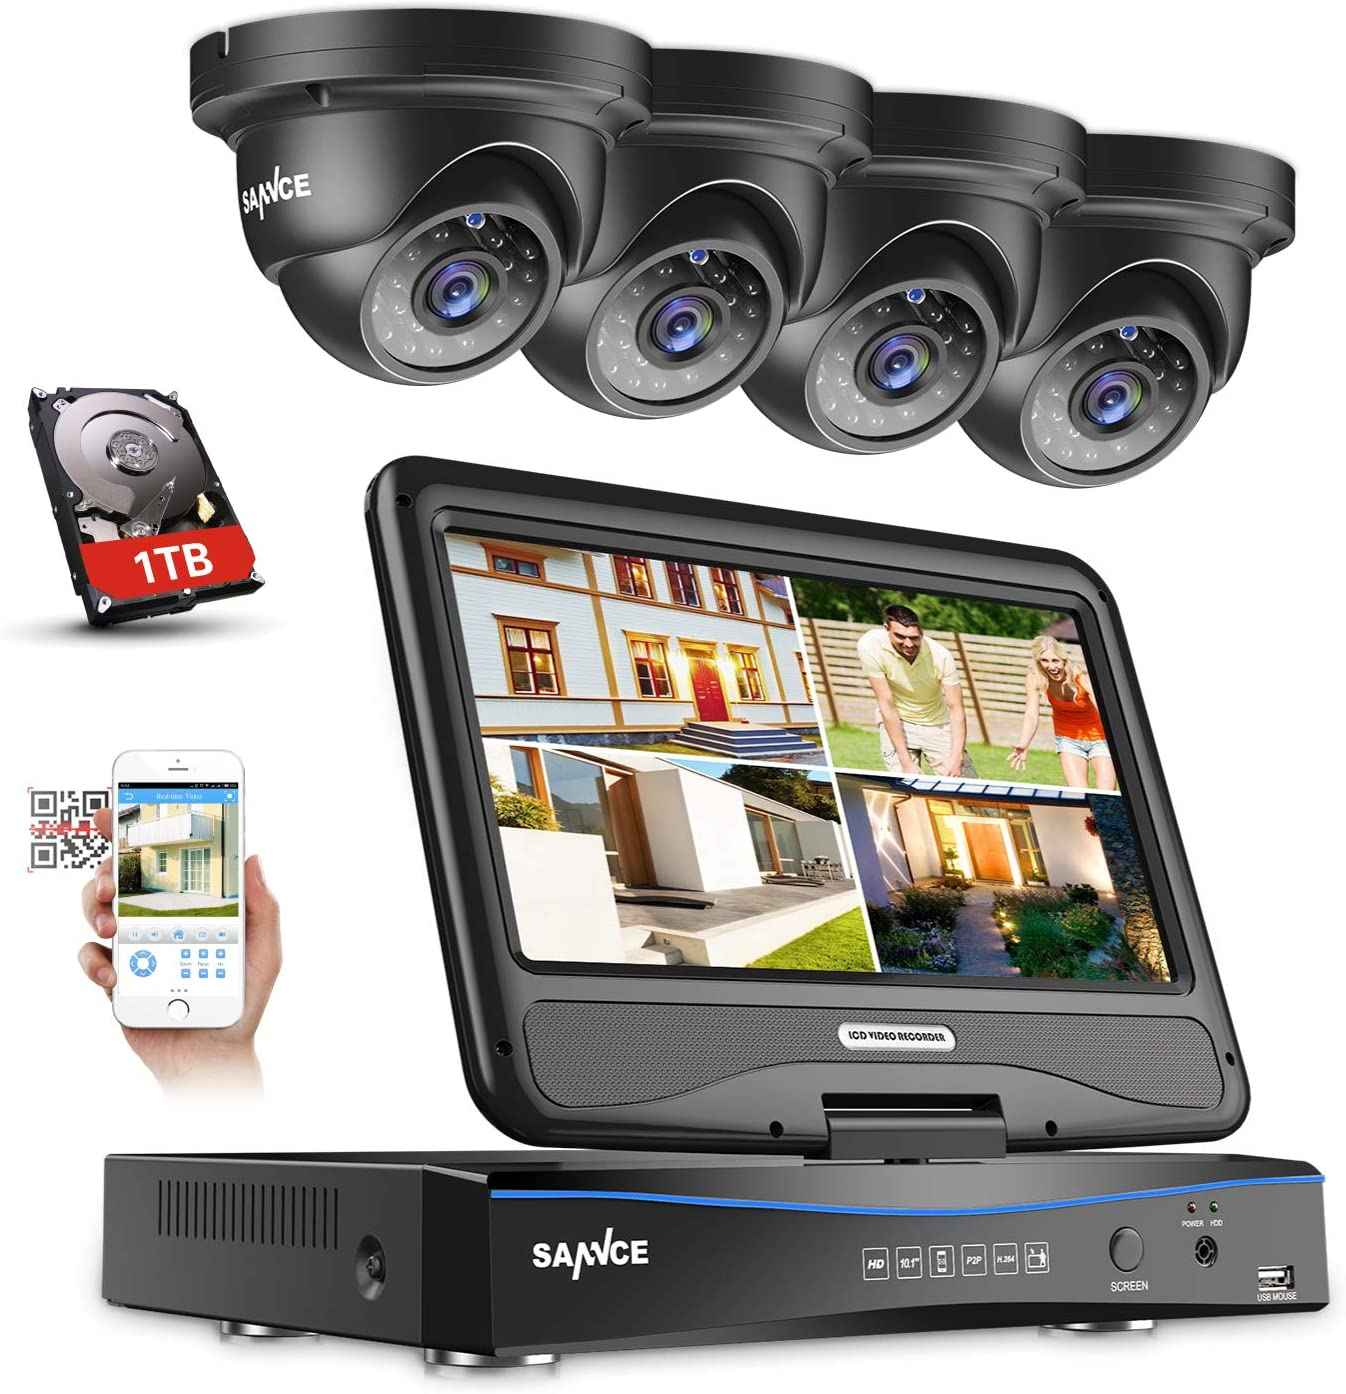 SANNCE 4-Channel 1080P 10.1 LCD Monitor with 4 1080P Dome Cameras, Clear Day Night Vision Easy Remote Access Motion Detection Email Alert Security Camera System,1TB Hard Drive Included